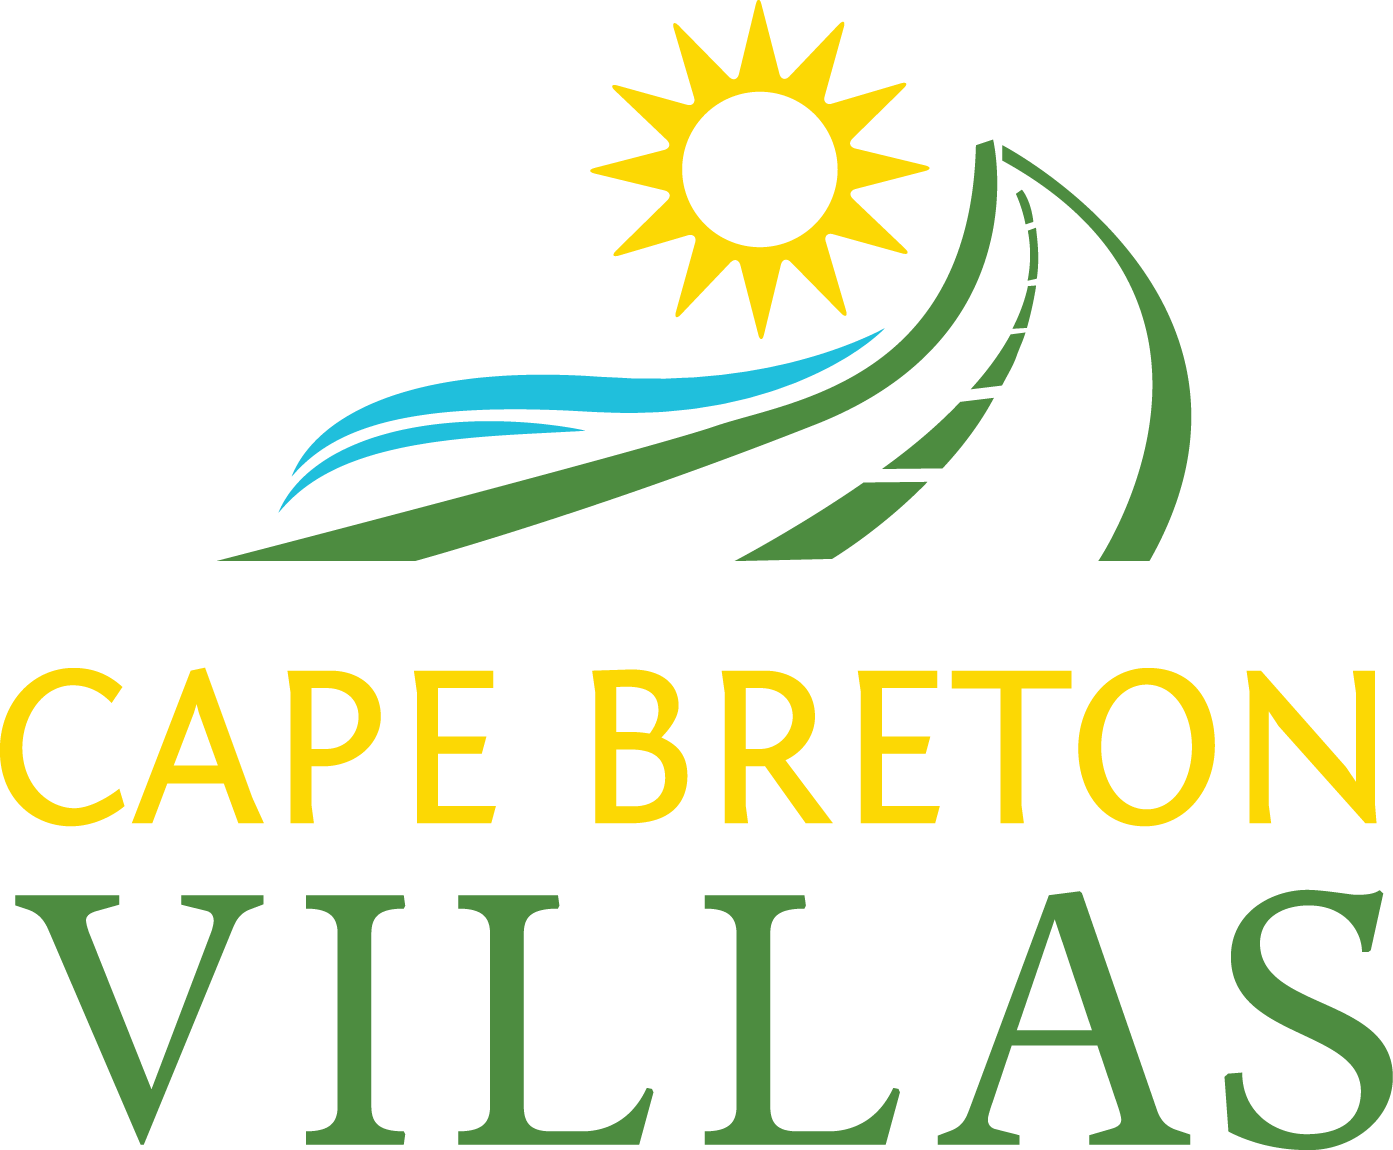 Cape Breton Villas - Accommodations Near the Cabot Trail